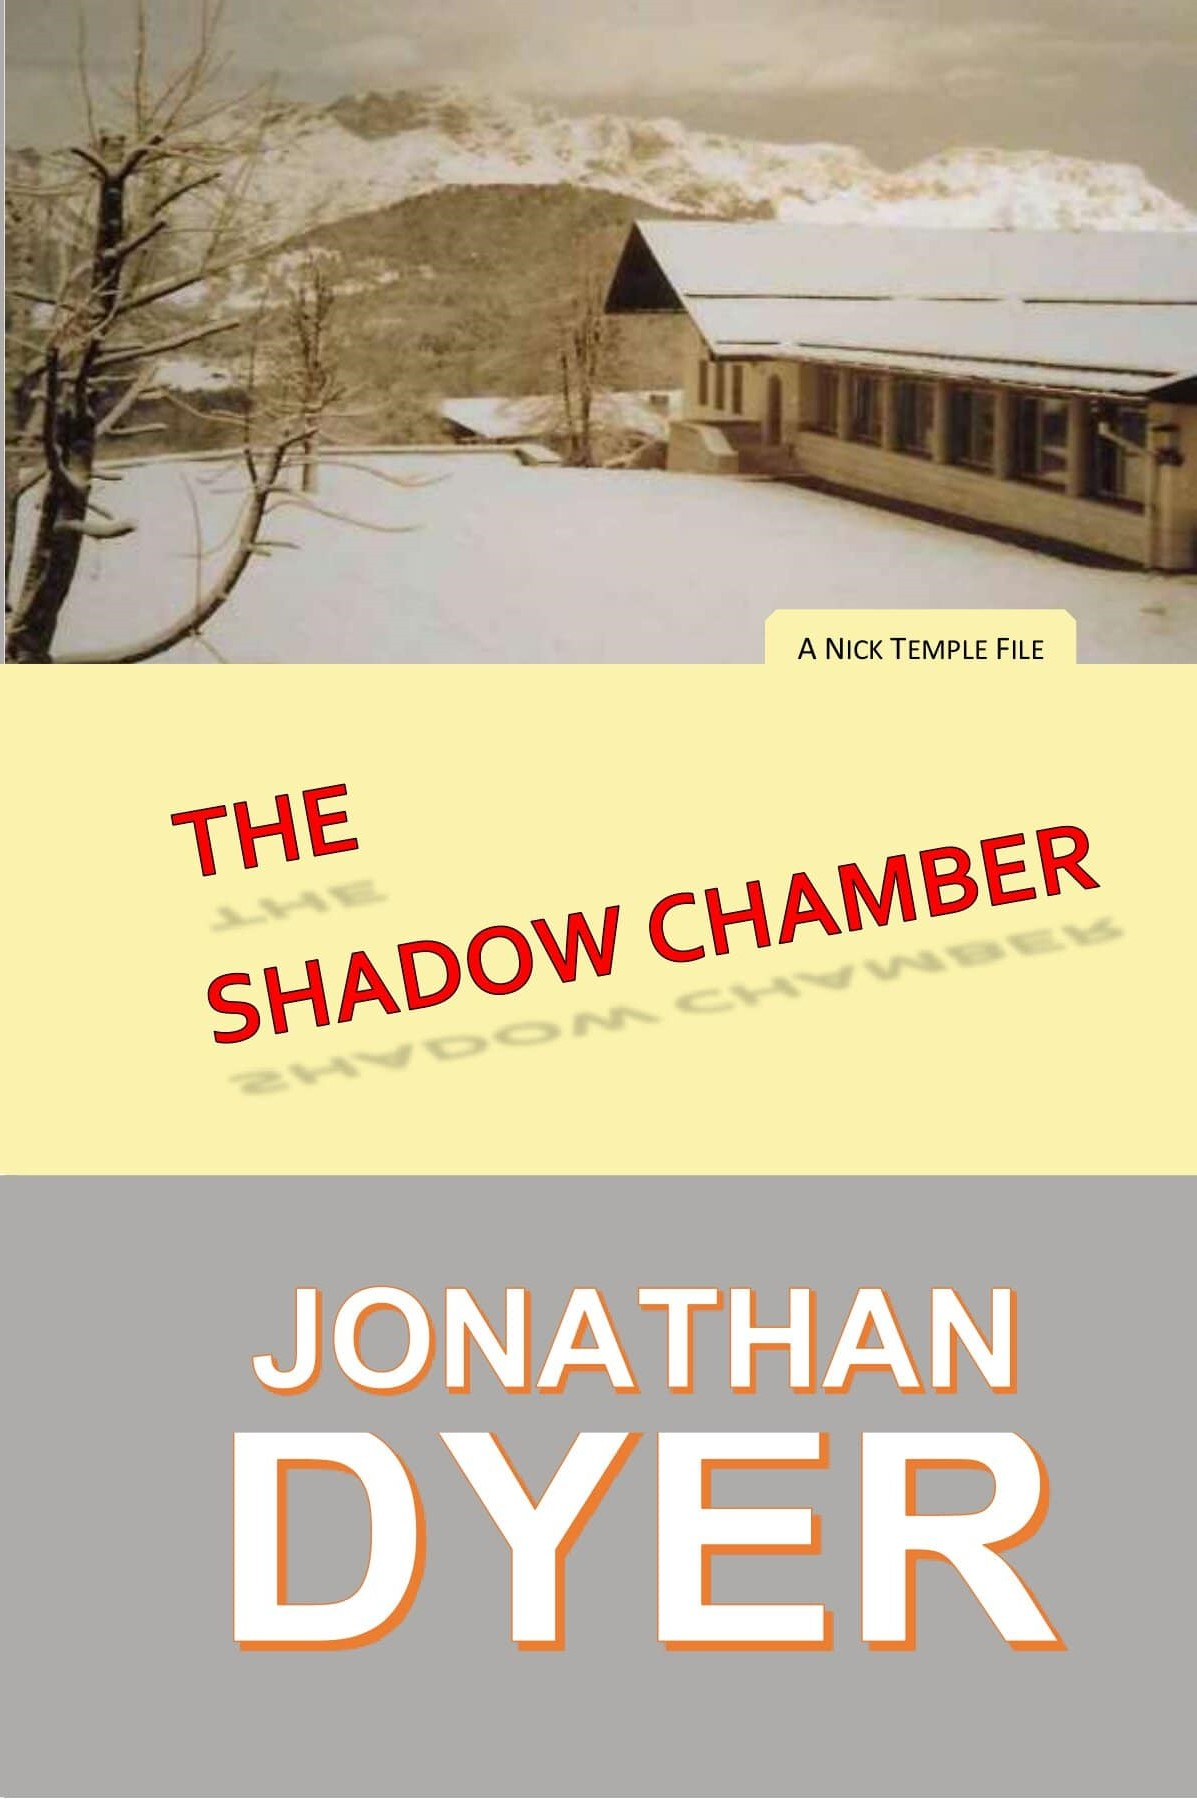 The cover of The Shadow Chamber, Nick Temple File number 5